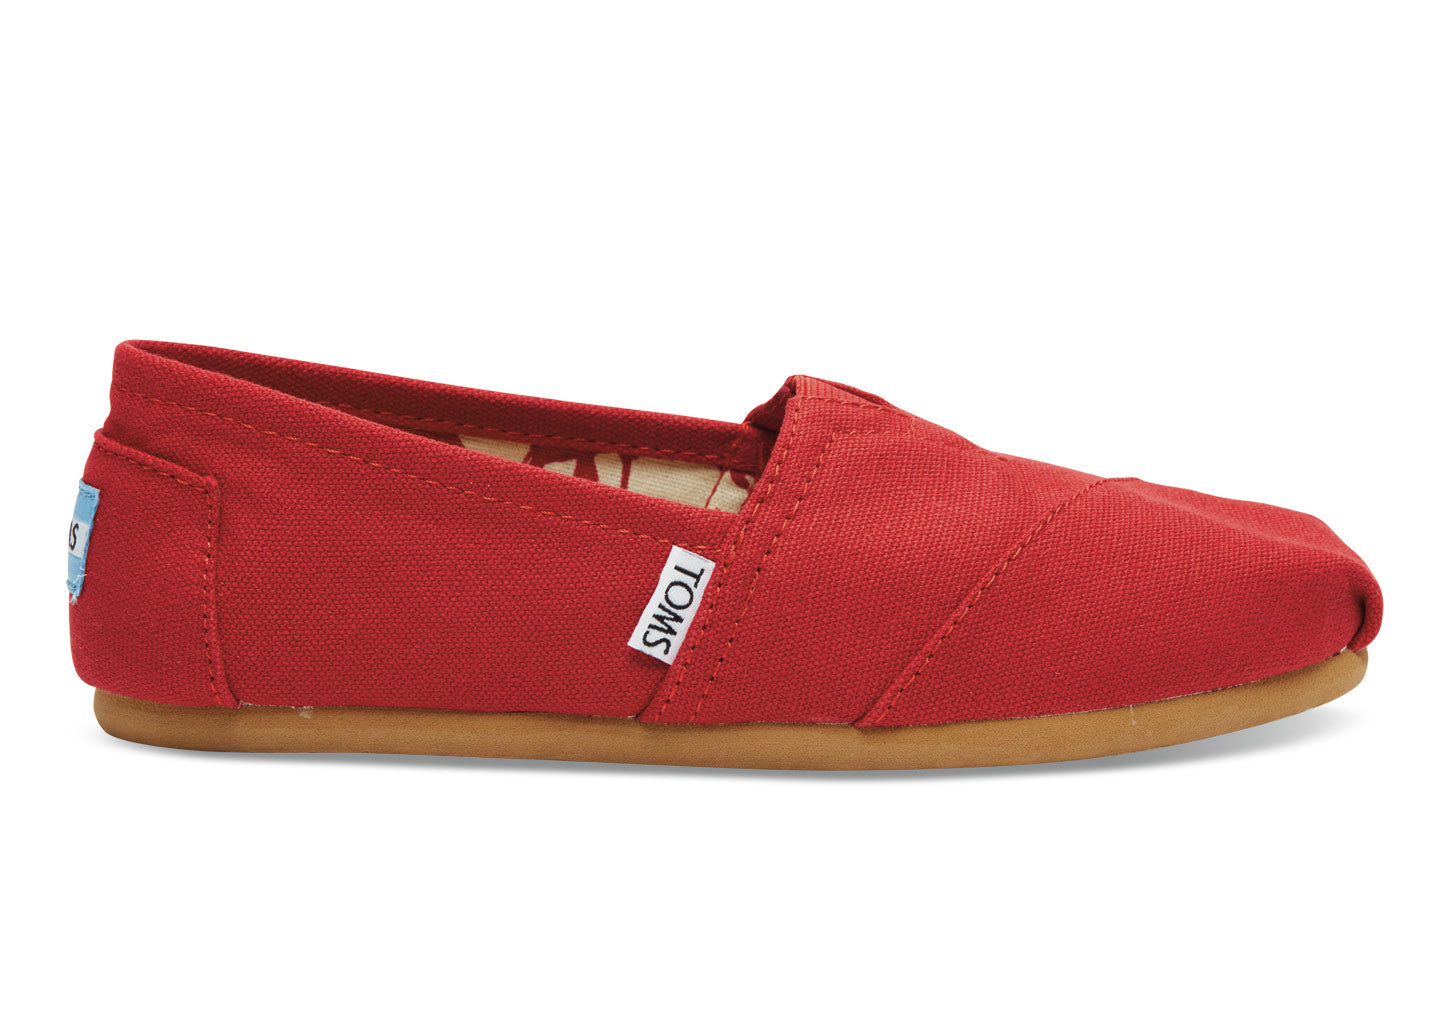 Toms Women's Red Classic Canvas Slip On